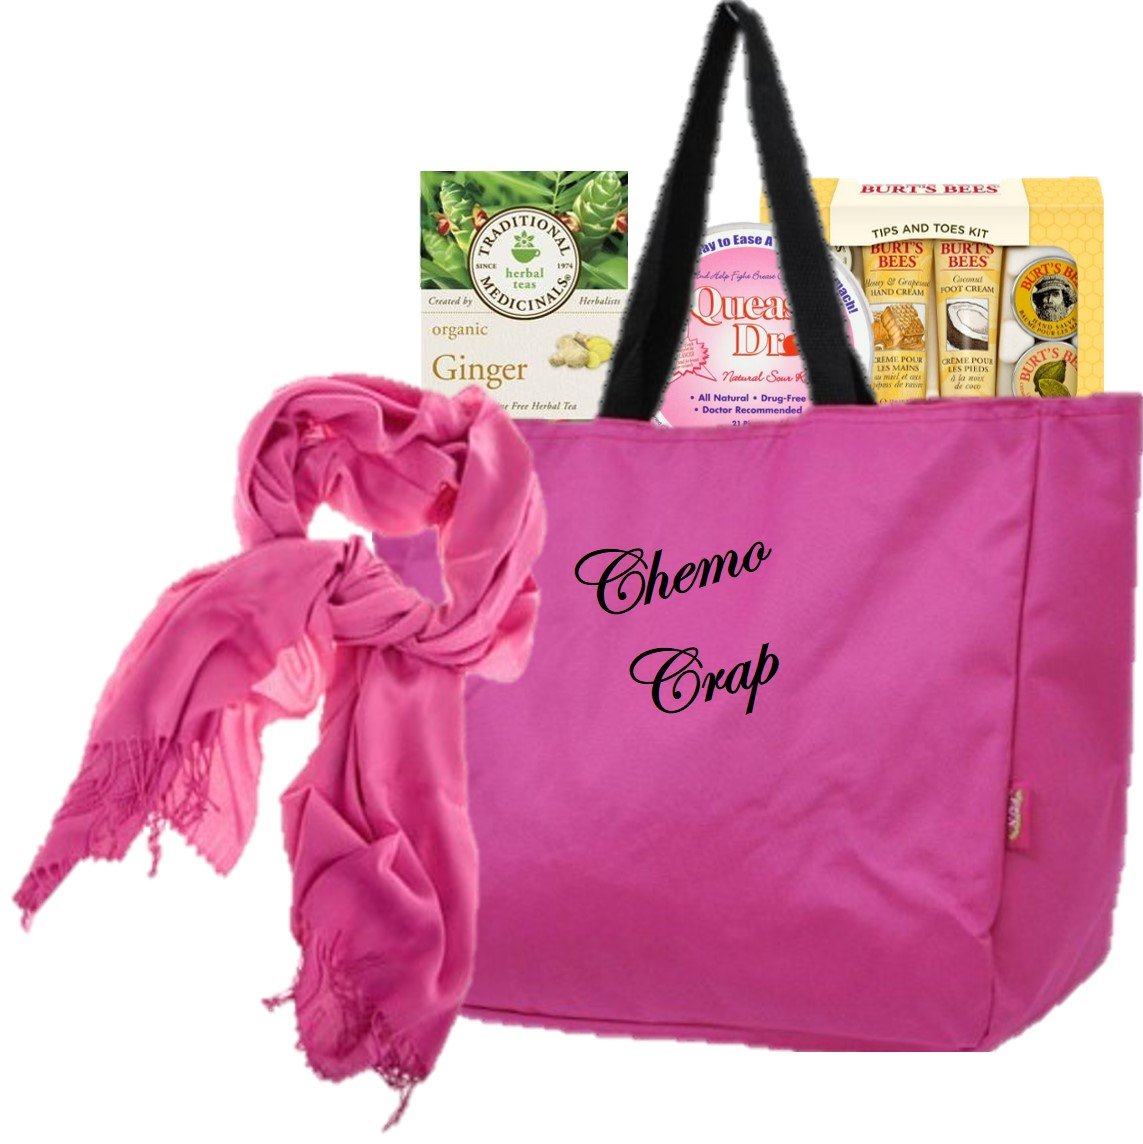 Just Don't Send Flowers Something Perfect Breast Cancer Gift for Women - Chemo Crap by Just Don't Send Flowers